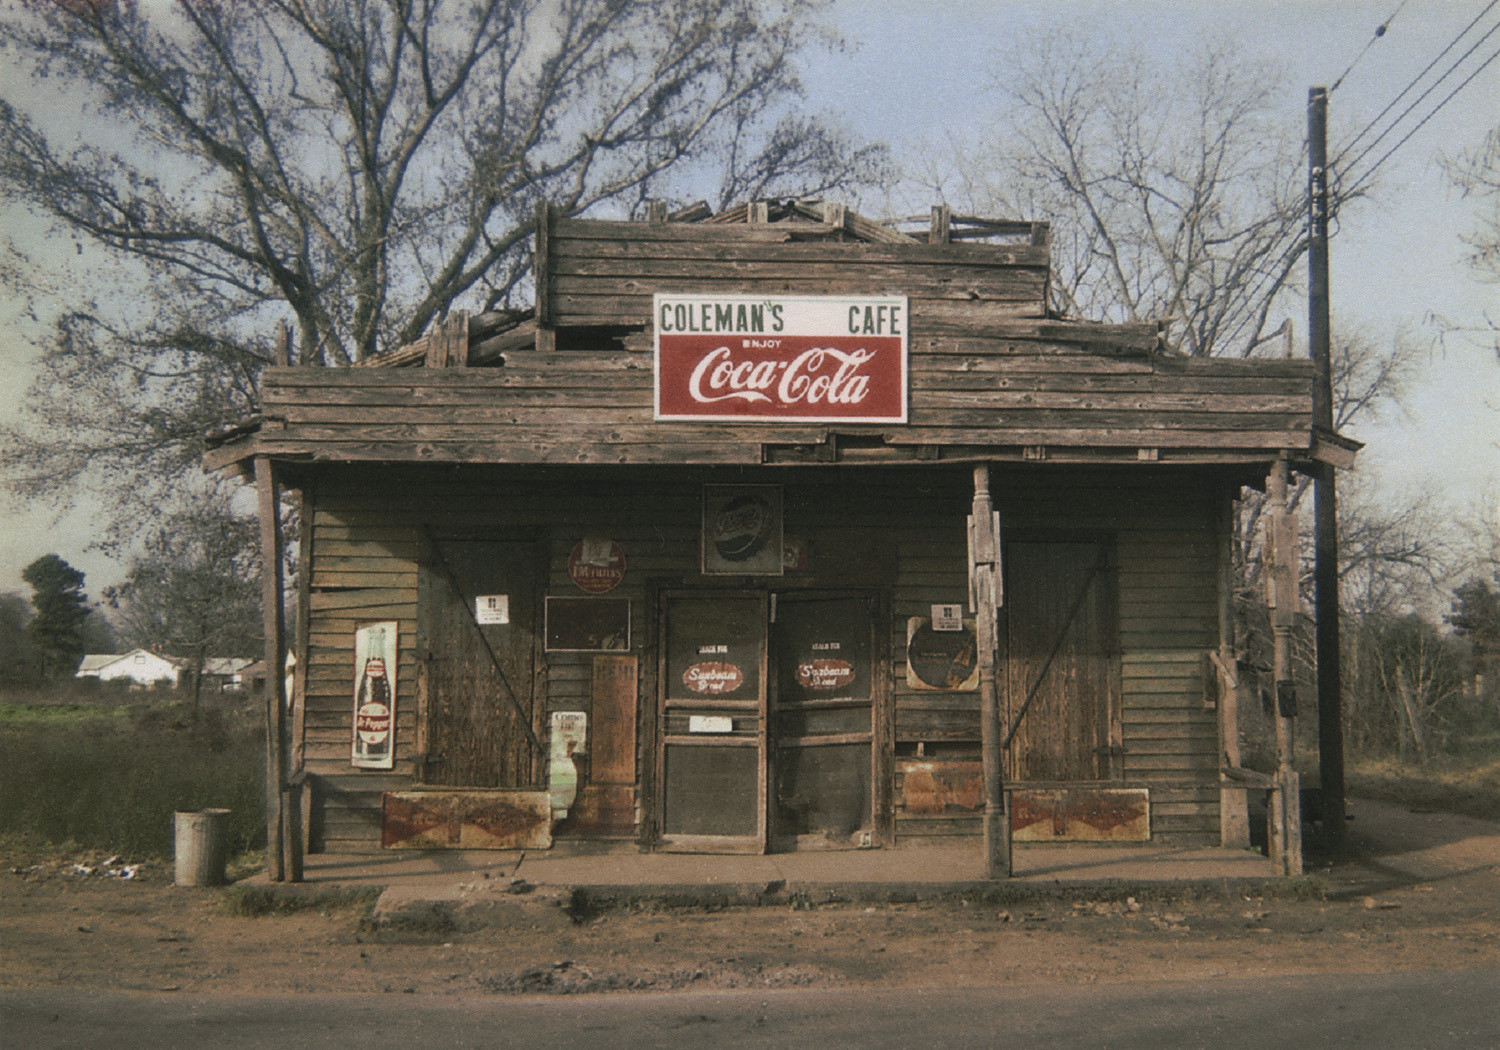 William Christenberry, Coleman's Café, Greensboro, Alabama, 1971